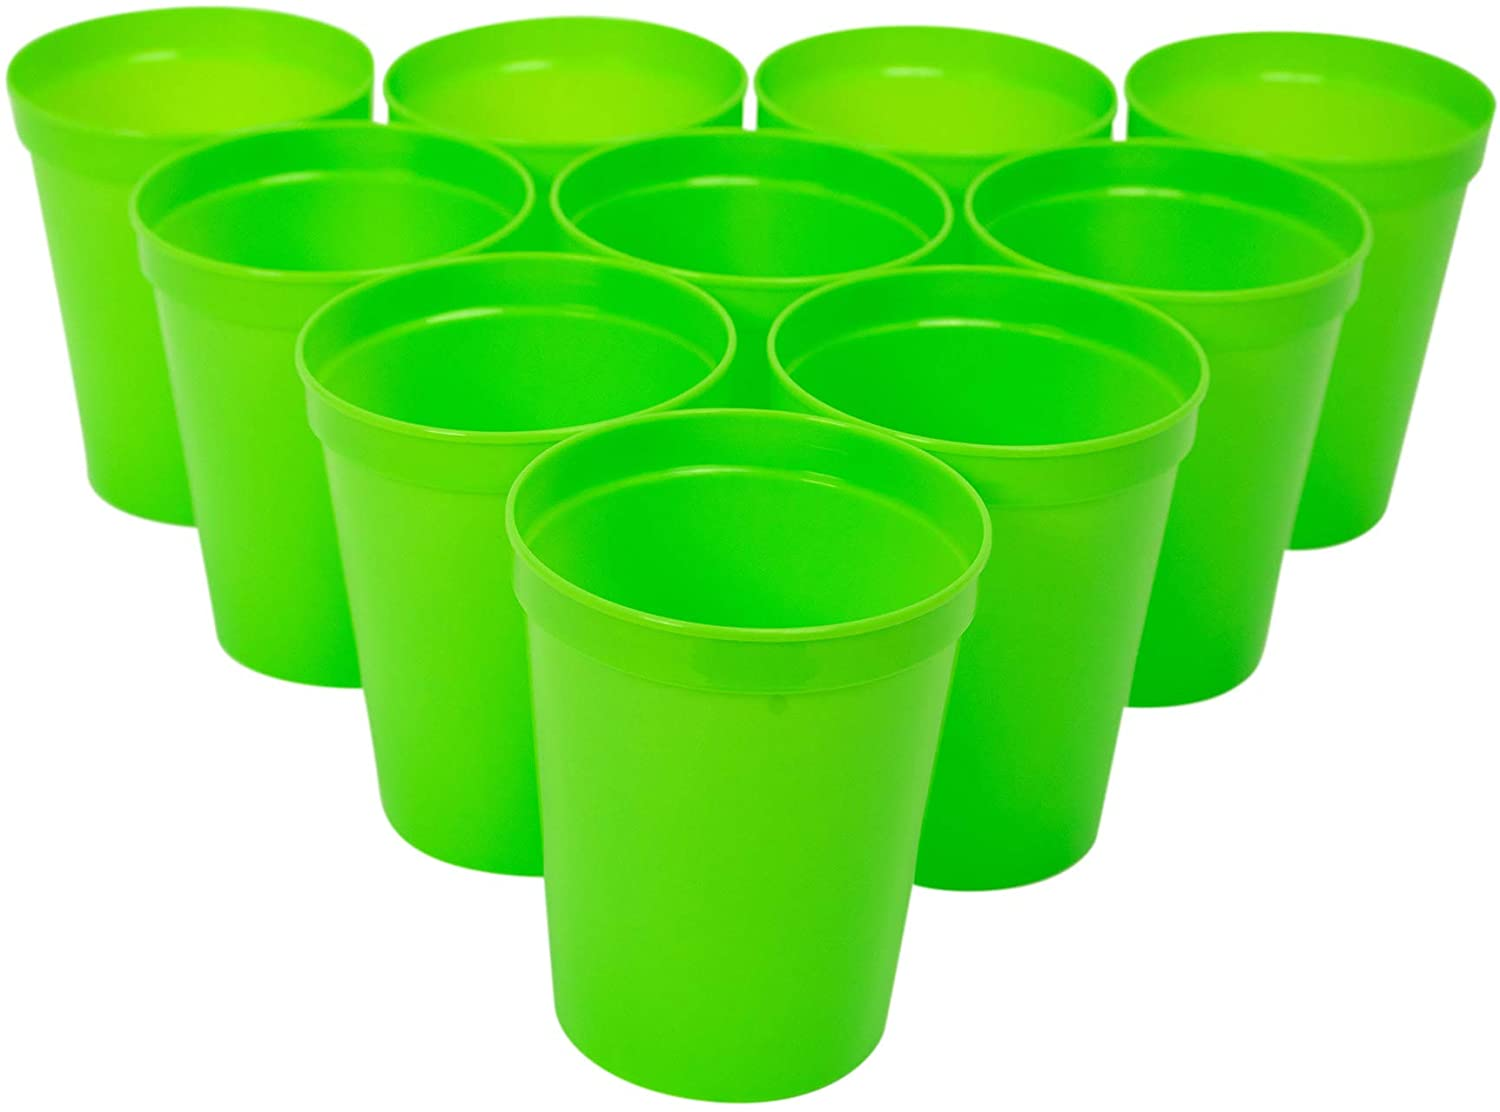 CSBD Stadium 16 oz. Plastic Cups, 10 Pack, Blank Reusable Drink Tumblers for Parties, Events, Marketing, Weddings, DIY Projects or BBQ Picnics, No BPA (Lime Green)